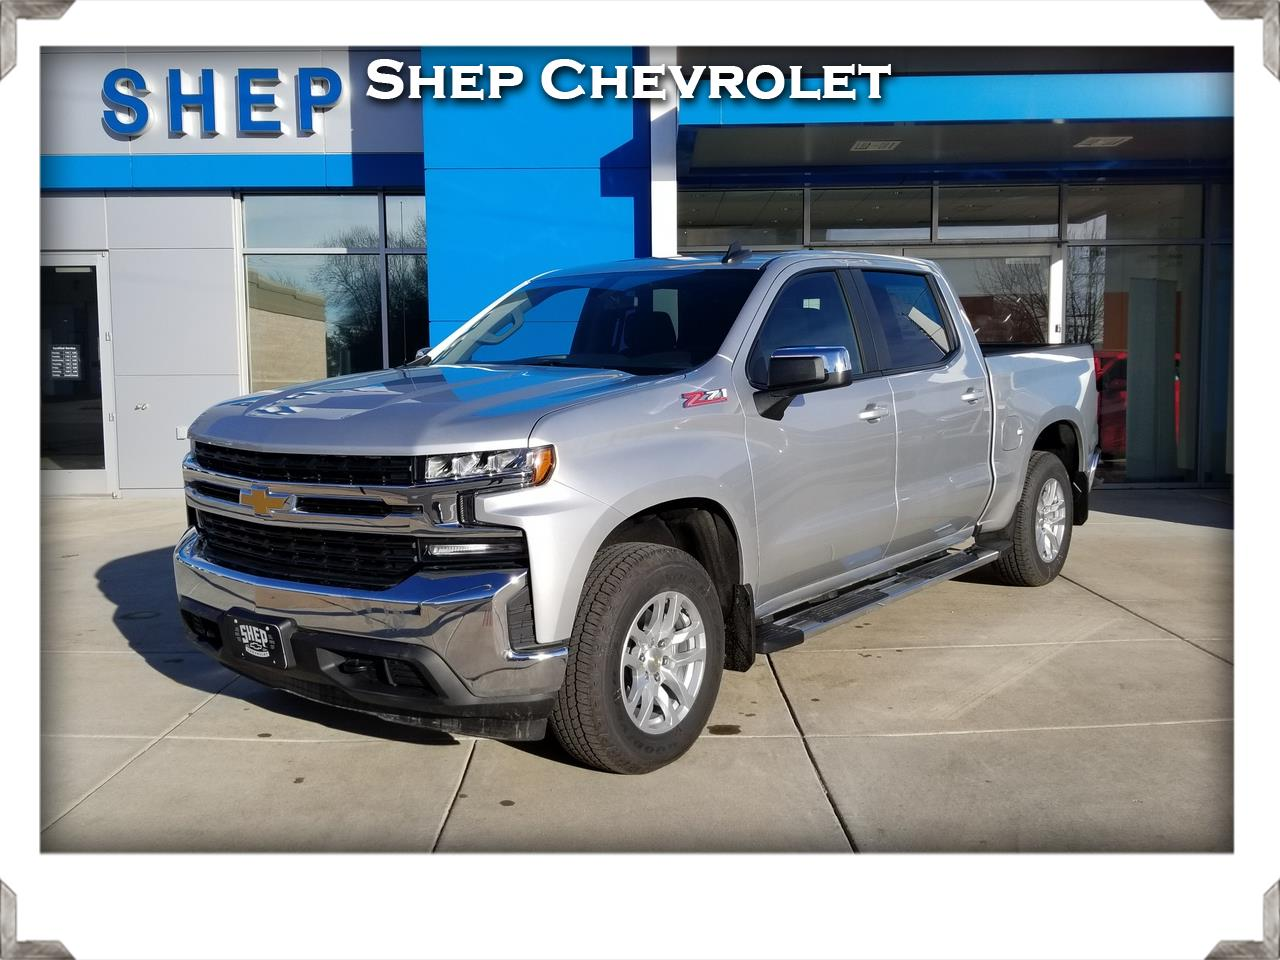 2019 Chevrolet Silverado 1500 LT Crew Cab 4WD Z71 All Star w/ (Demo Savings)